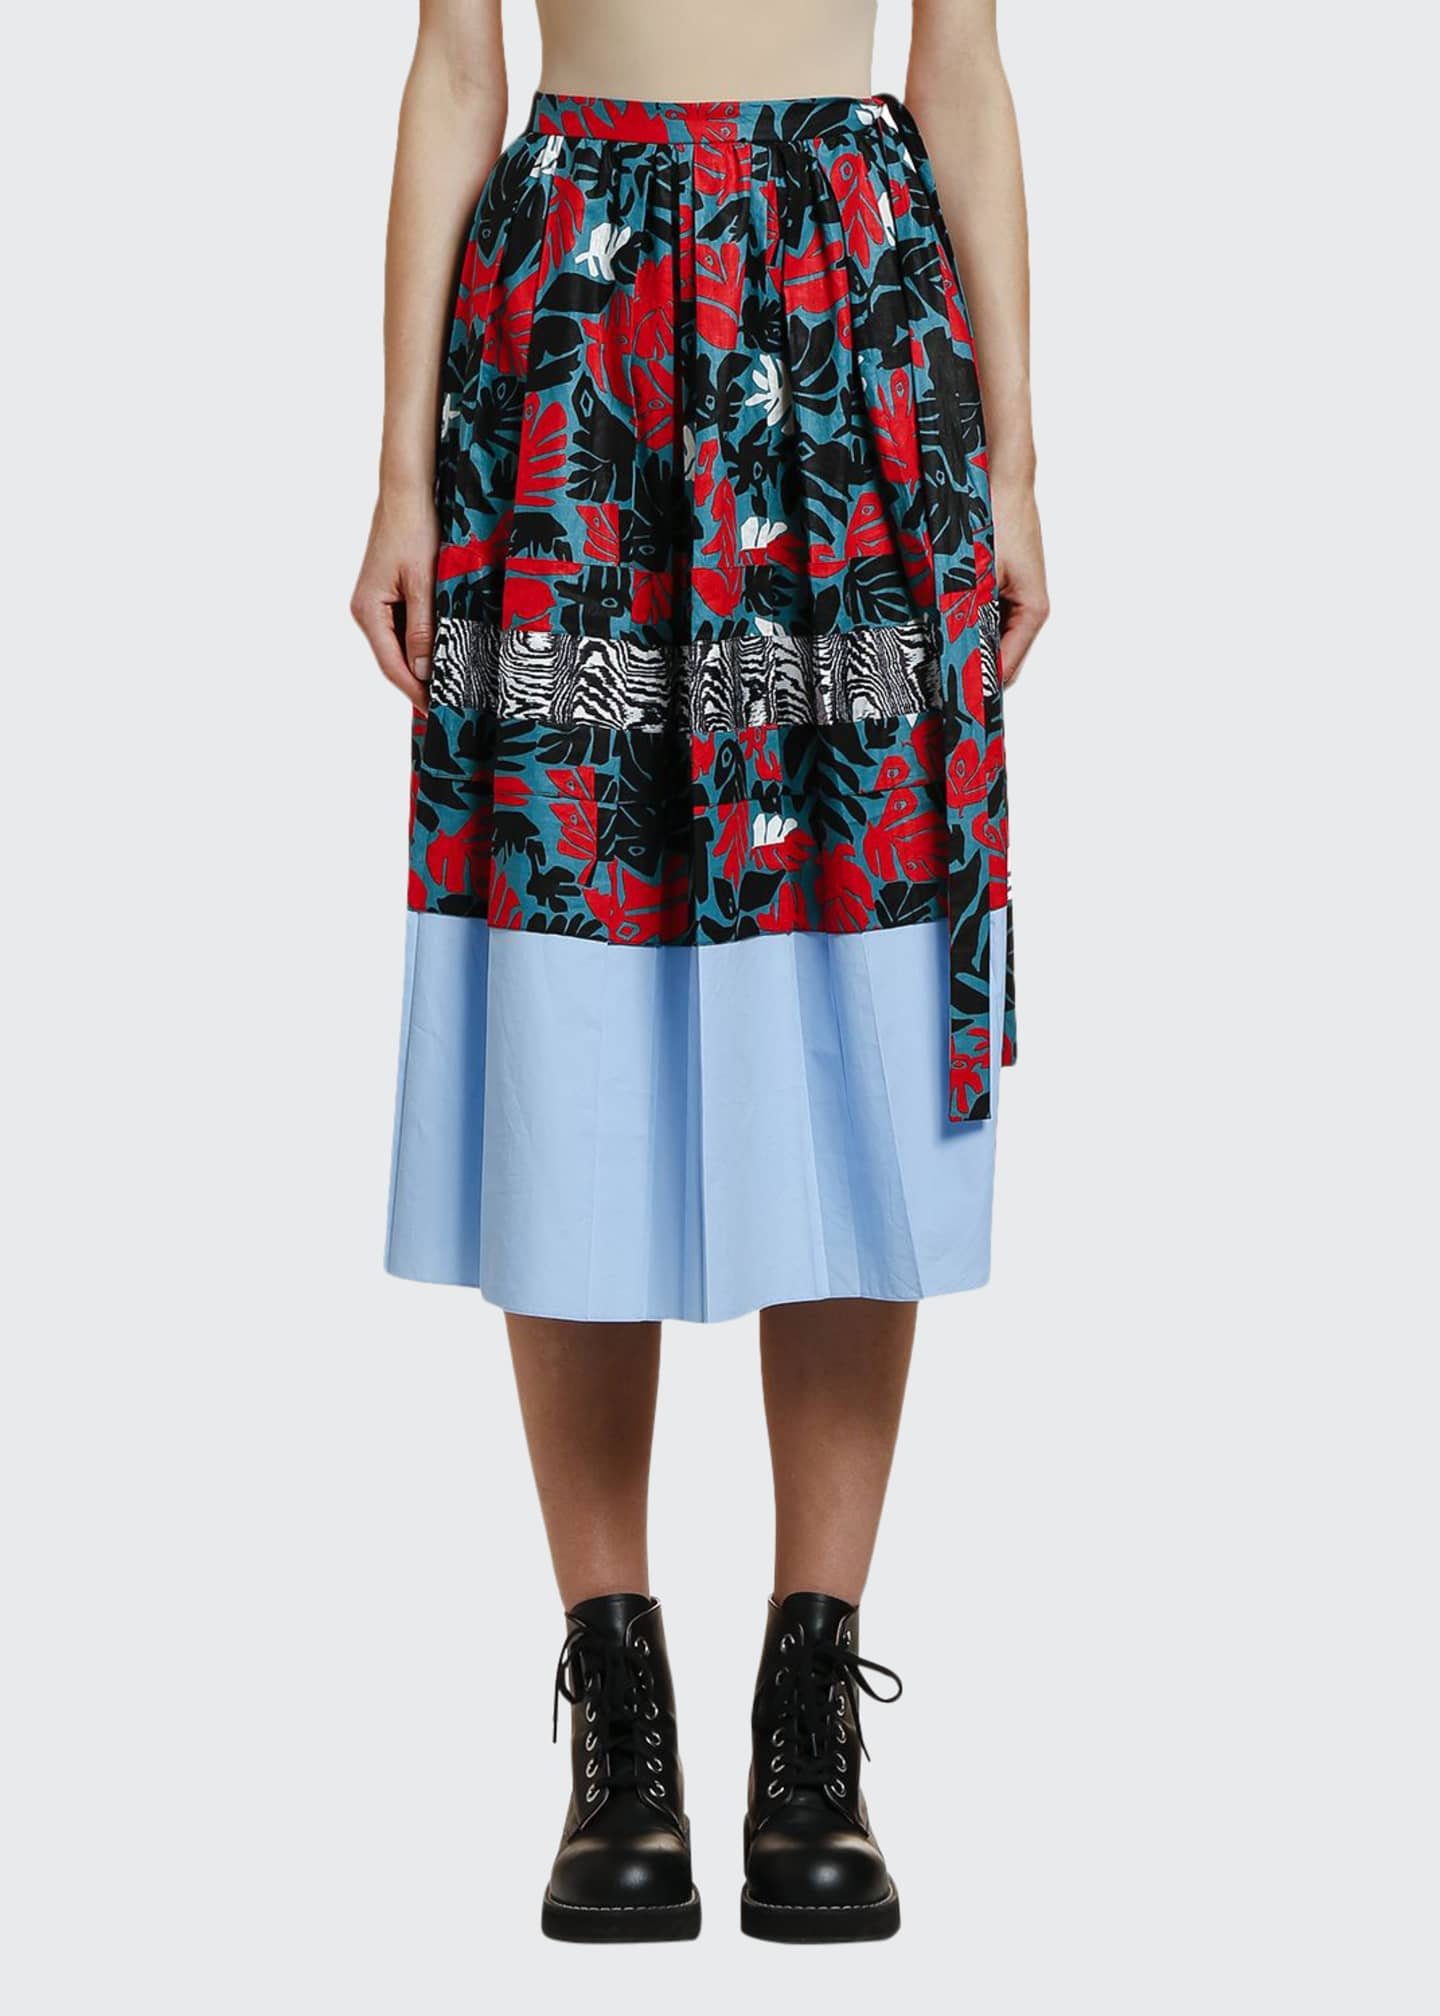 Marni Pleated Mixed-Print Midi Skirt